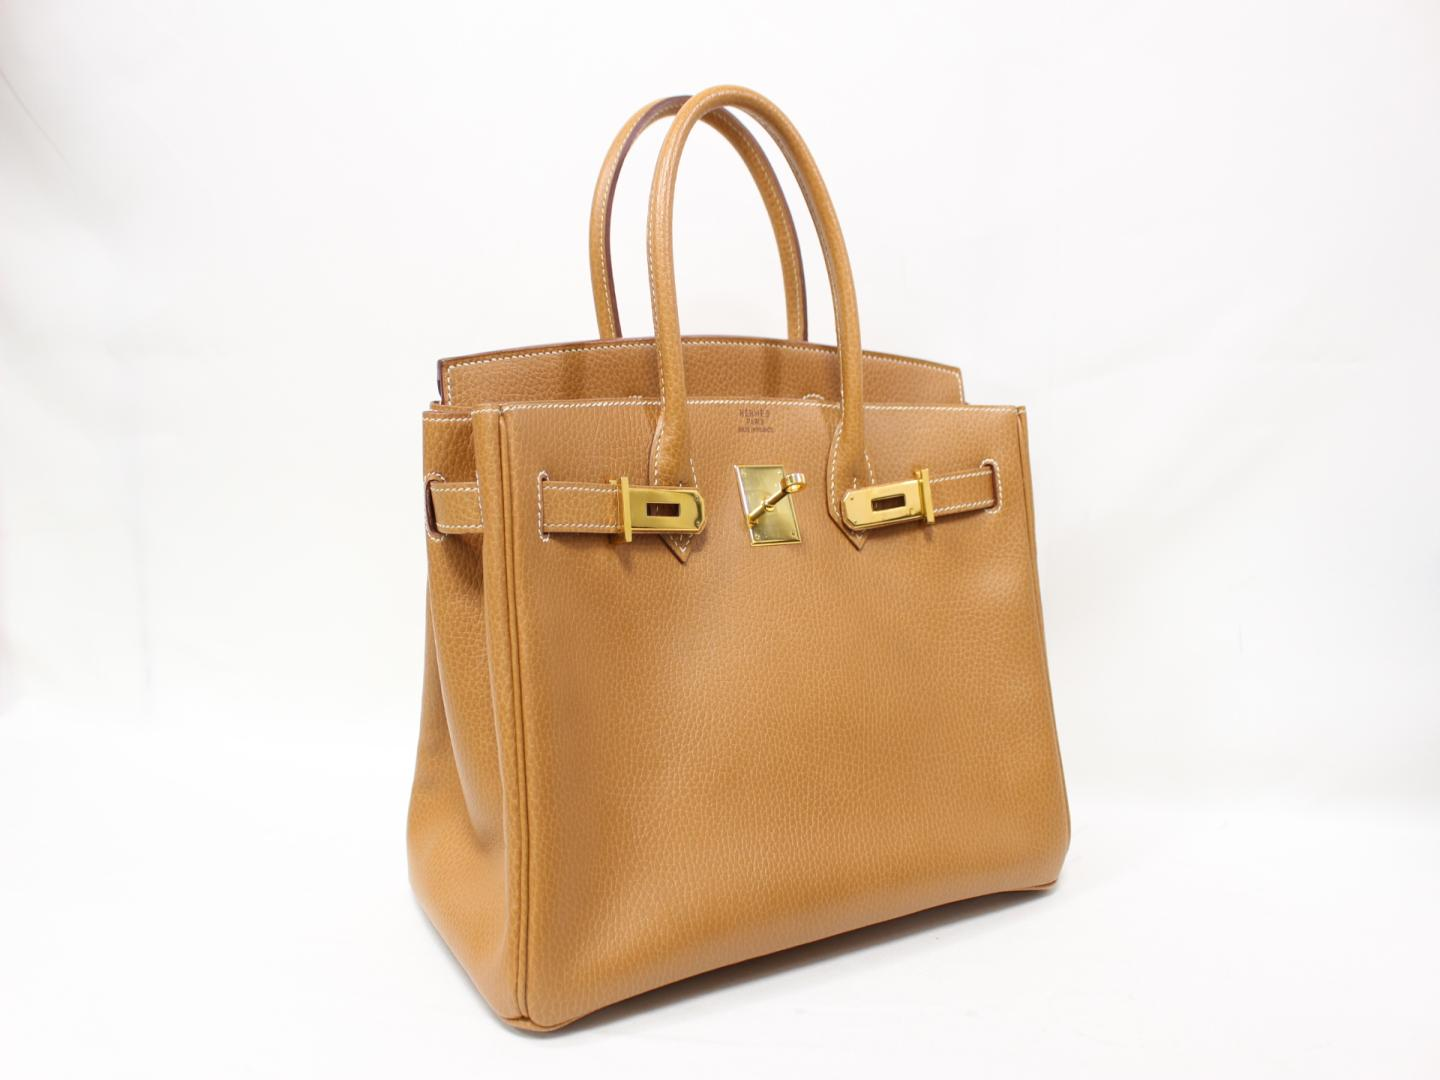 dd3f3927ef2c ... official store authentic hermes birkin 30 hand tote bag ardennes  leather gold brown ghw 2666d cfa24